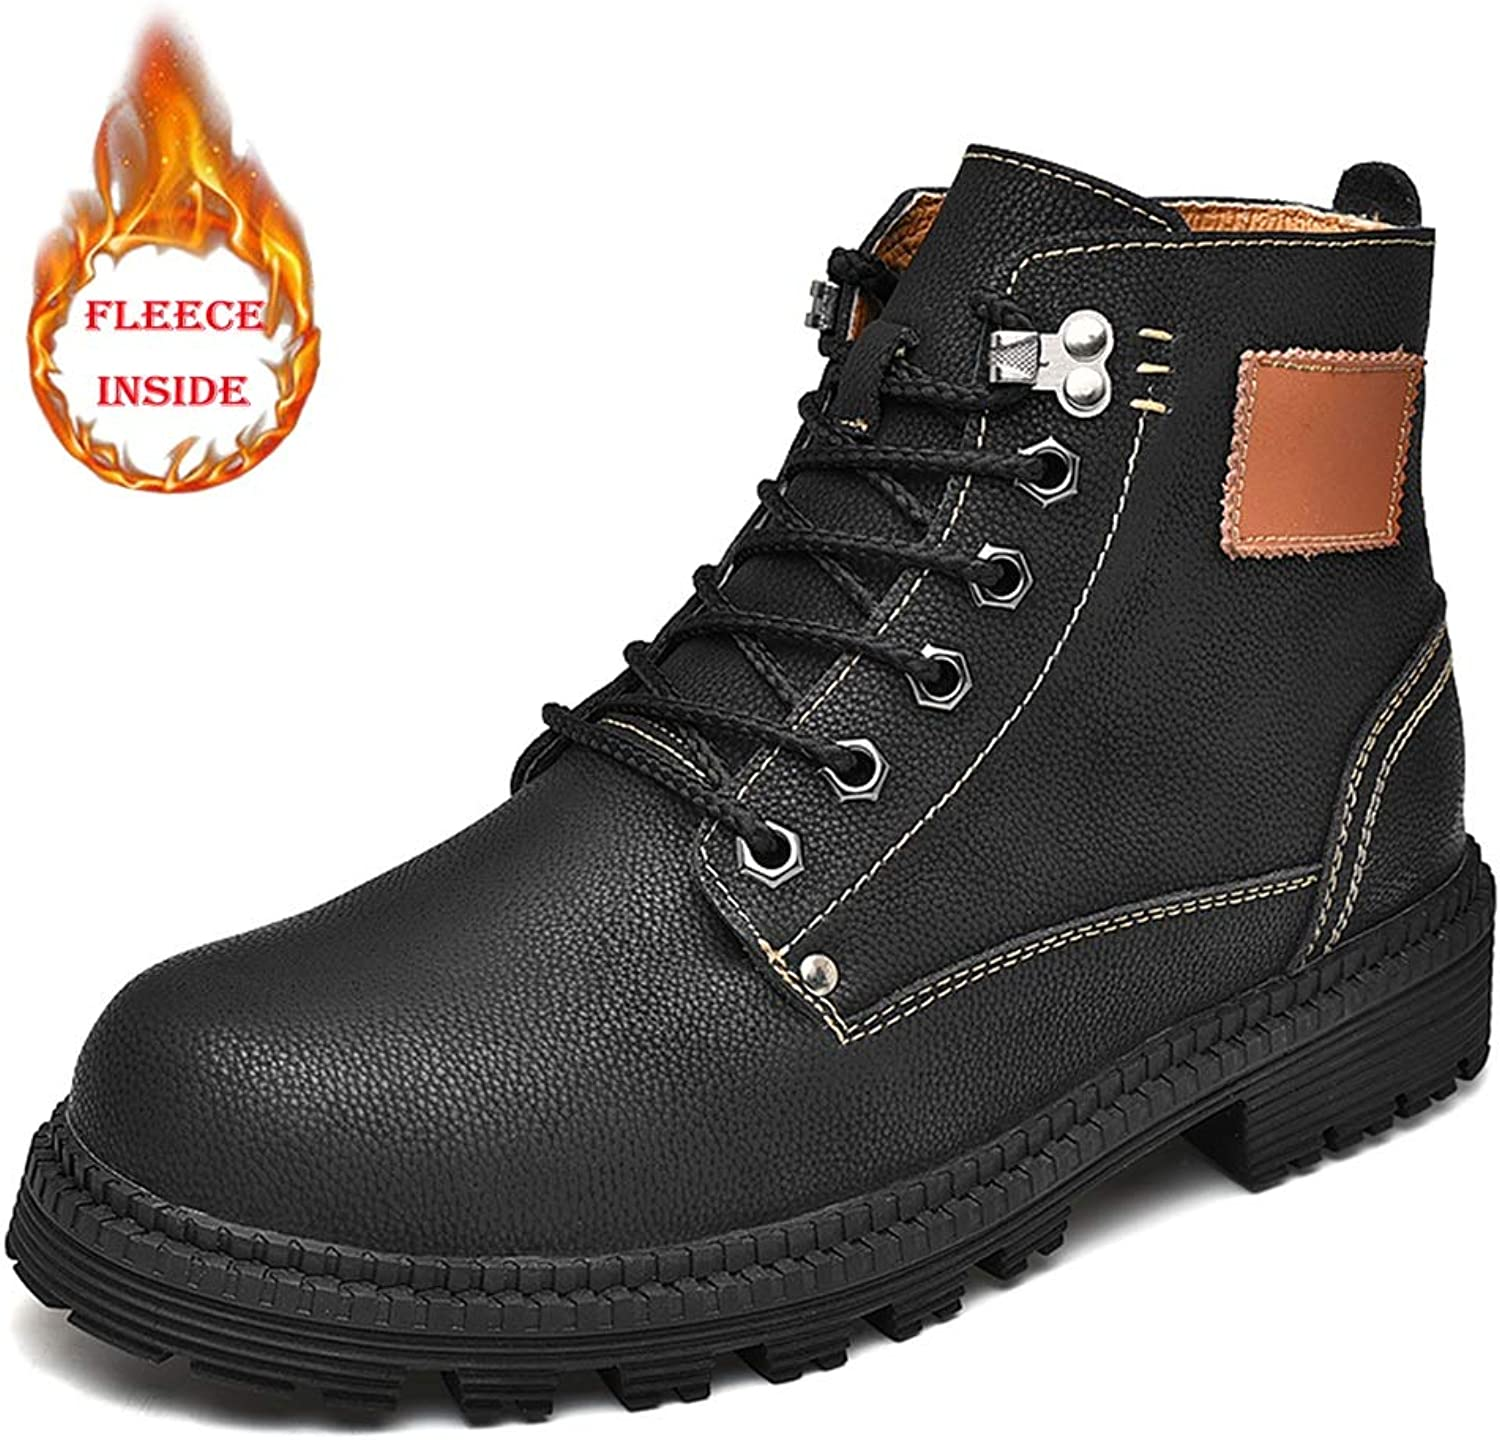 SRY-Fashion shoes Men's Fashion Ankle Work Boot Warm shoes Casual Simple and Comfortable Faux Fleece Inside Retro High Top Boot(Convetional is Optional)